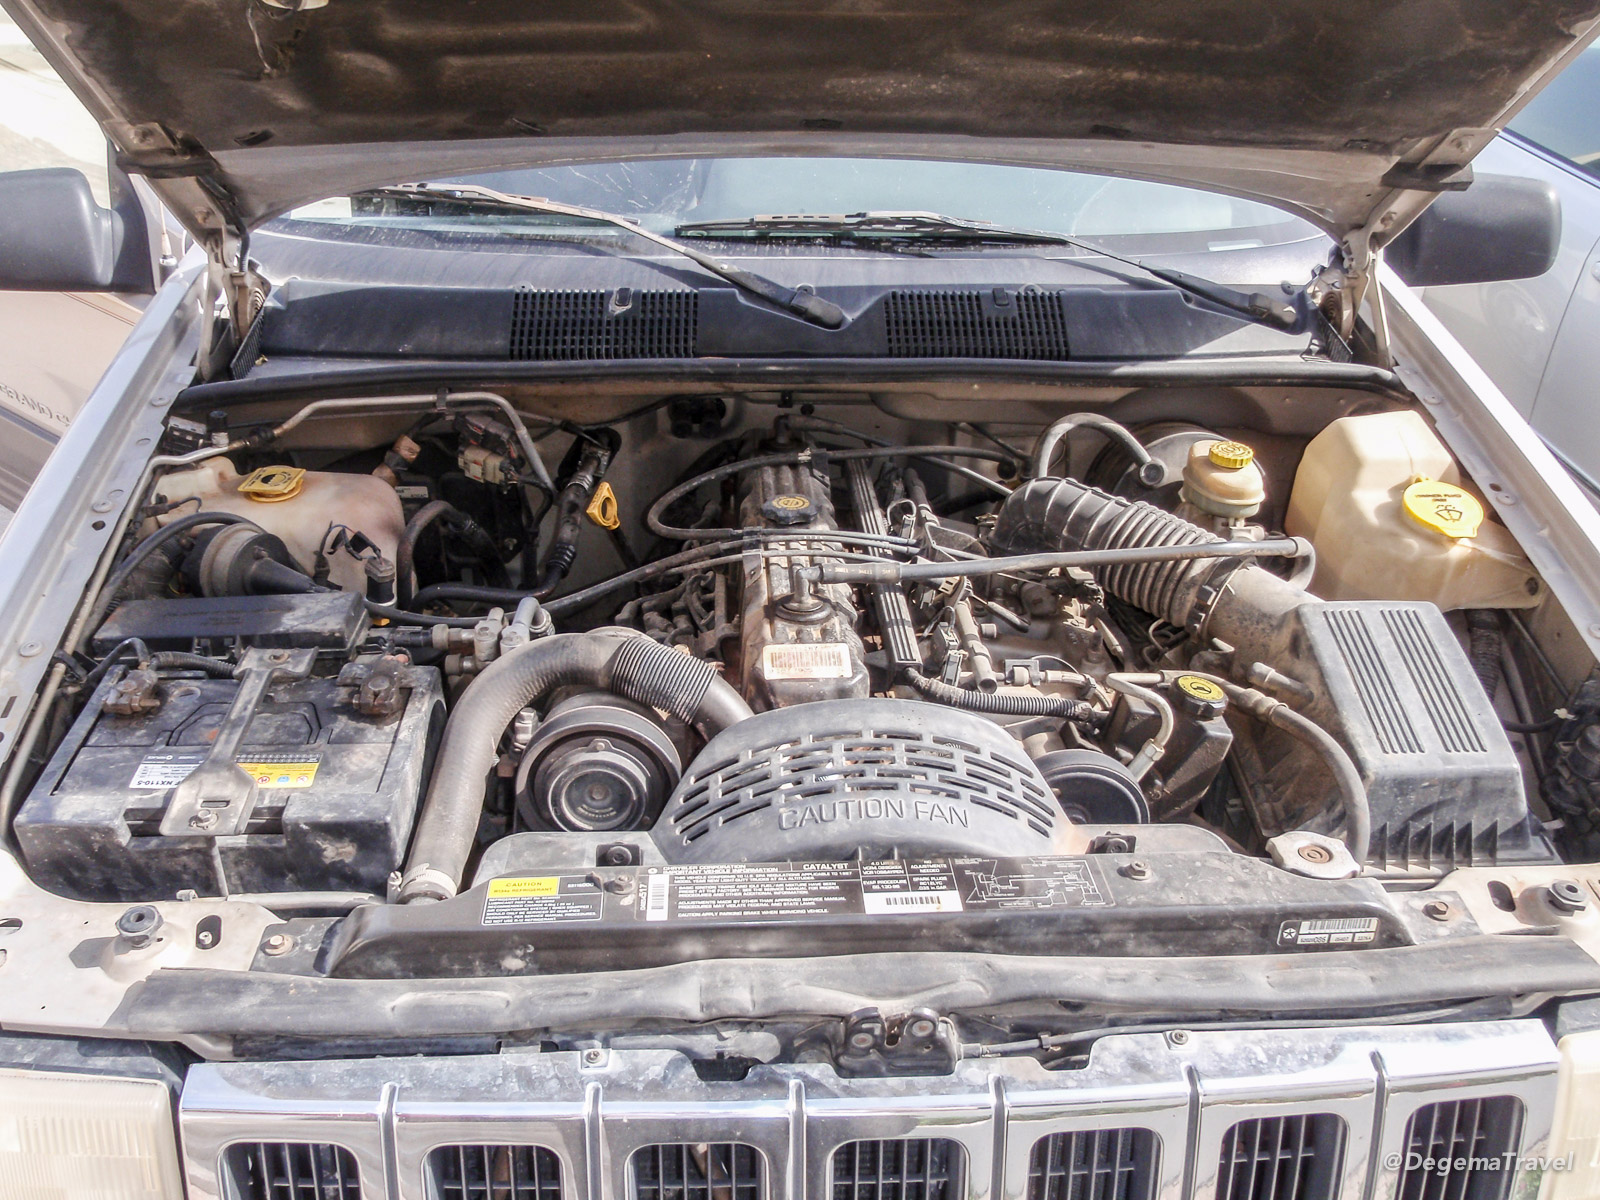 Engine bay of 1997 Jeep Grand Cherokee Laredo in Muscat, Oman